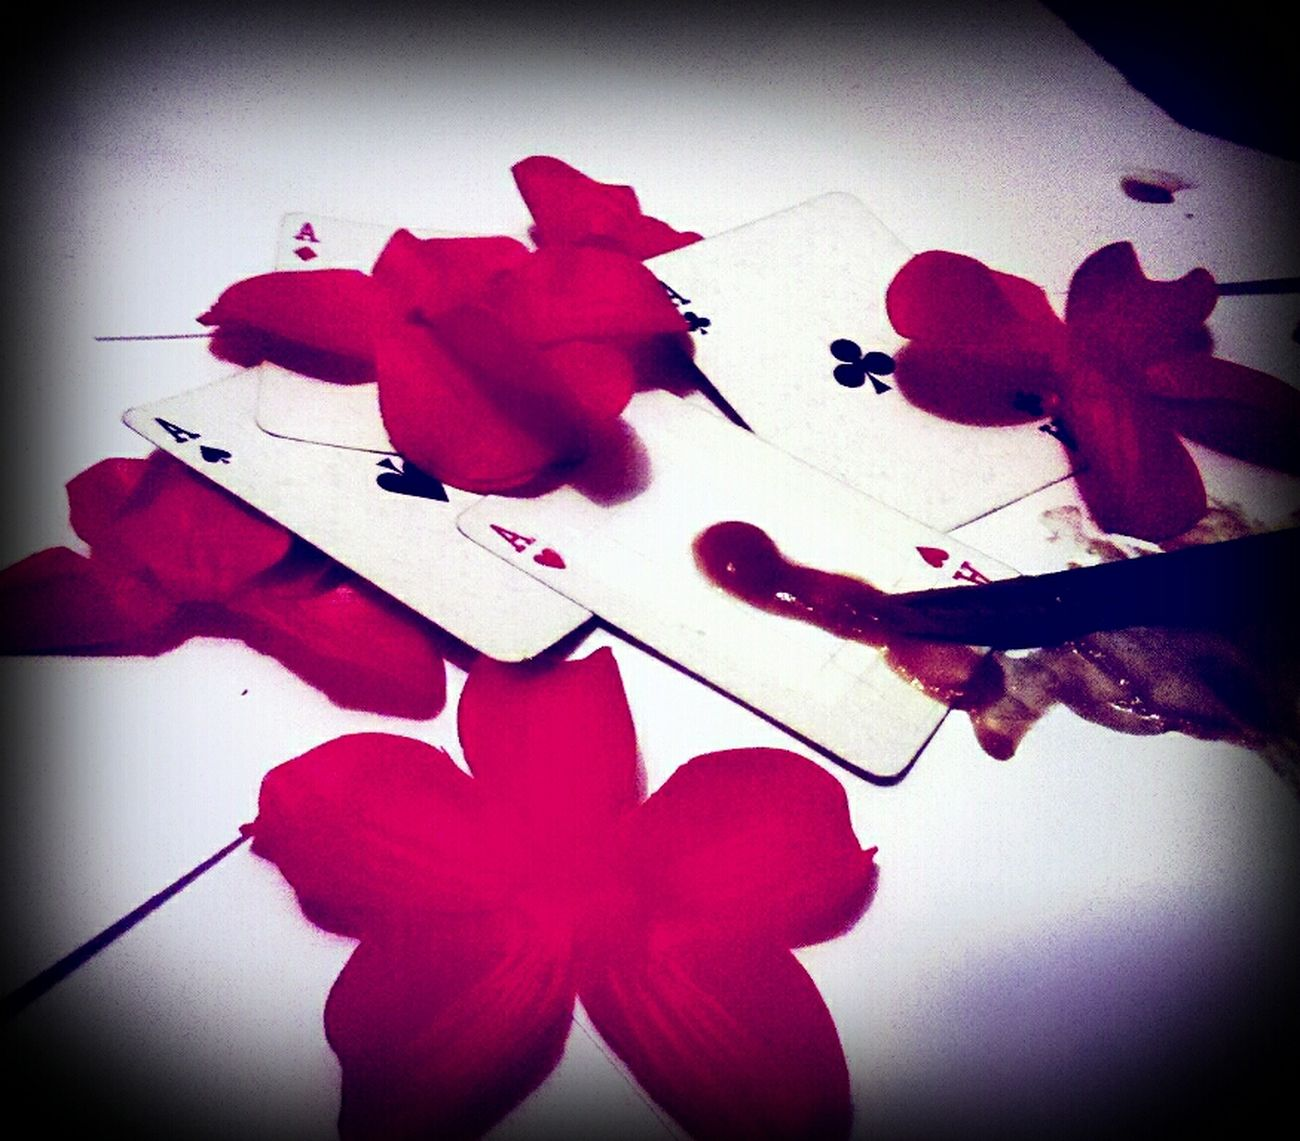 """""""An ace of hearts bleeding giving drink hell that i created..."""" Poetry My Pic My Poem Staging Heartbroken"""